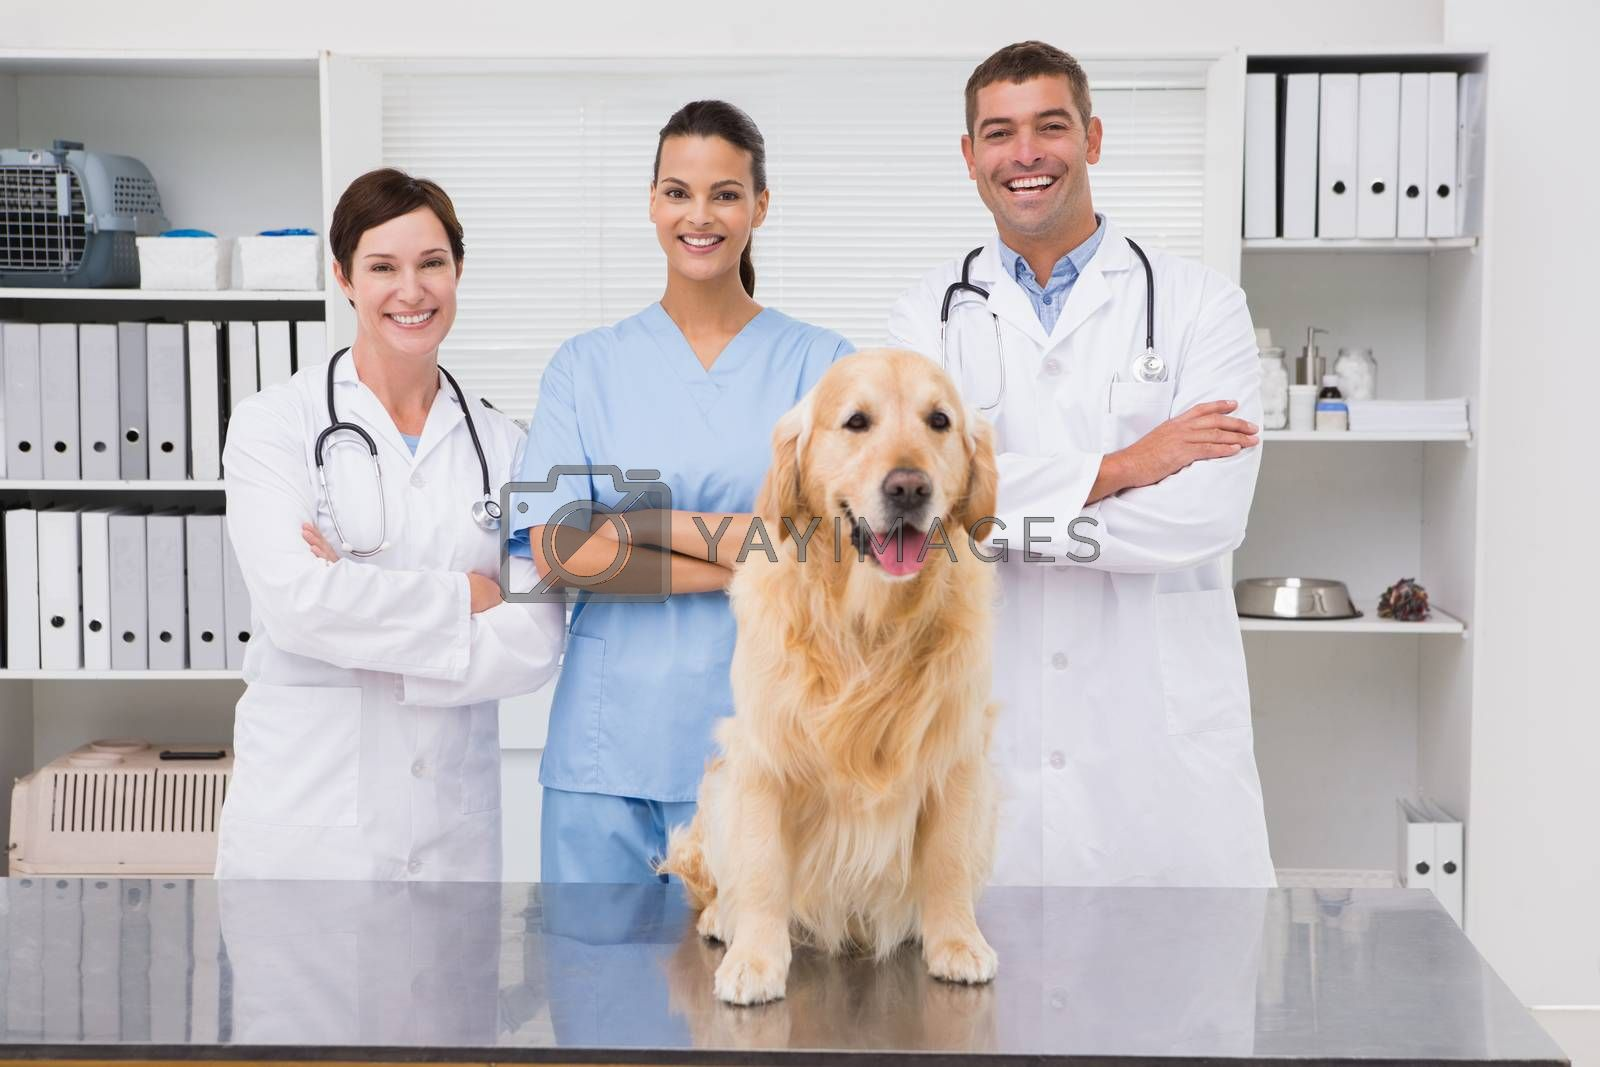 Veterinarian coworker smiling at camera with dog  in medical office